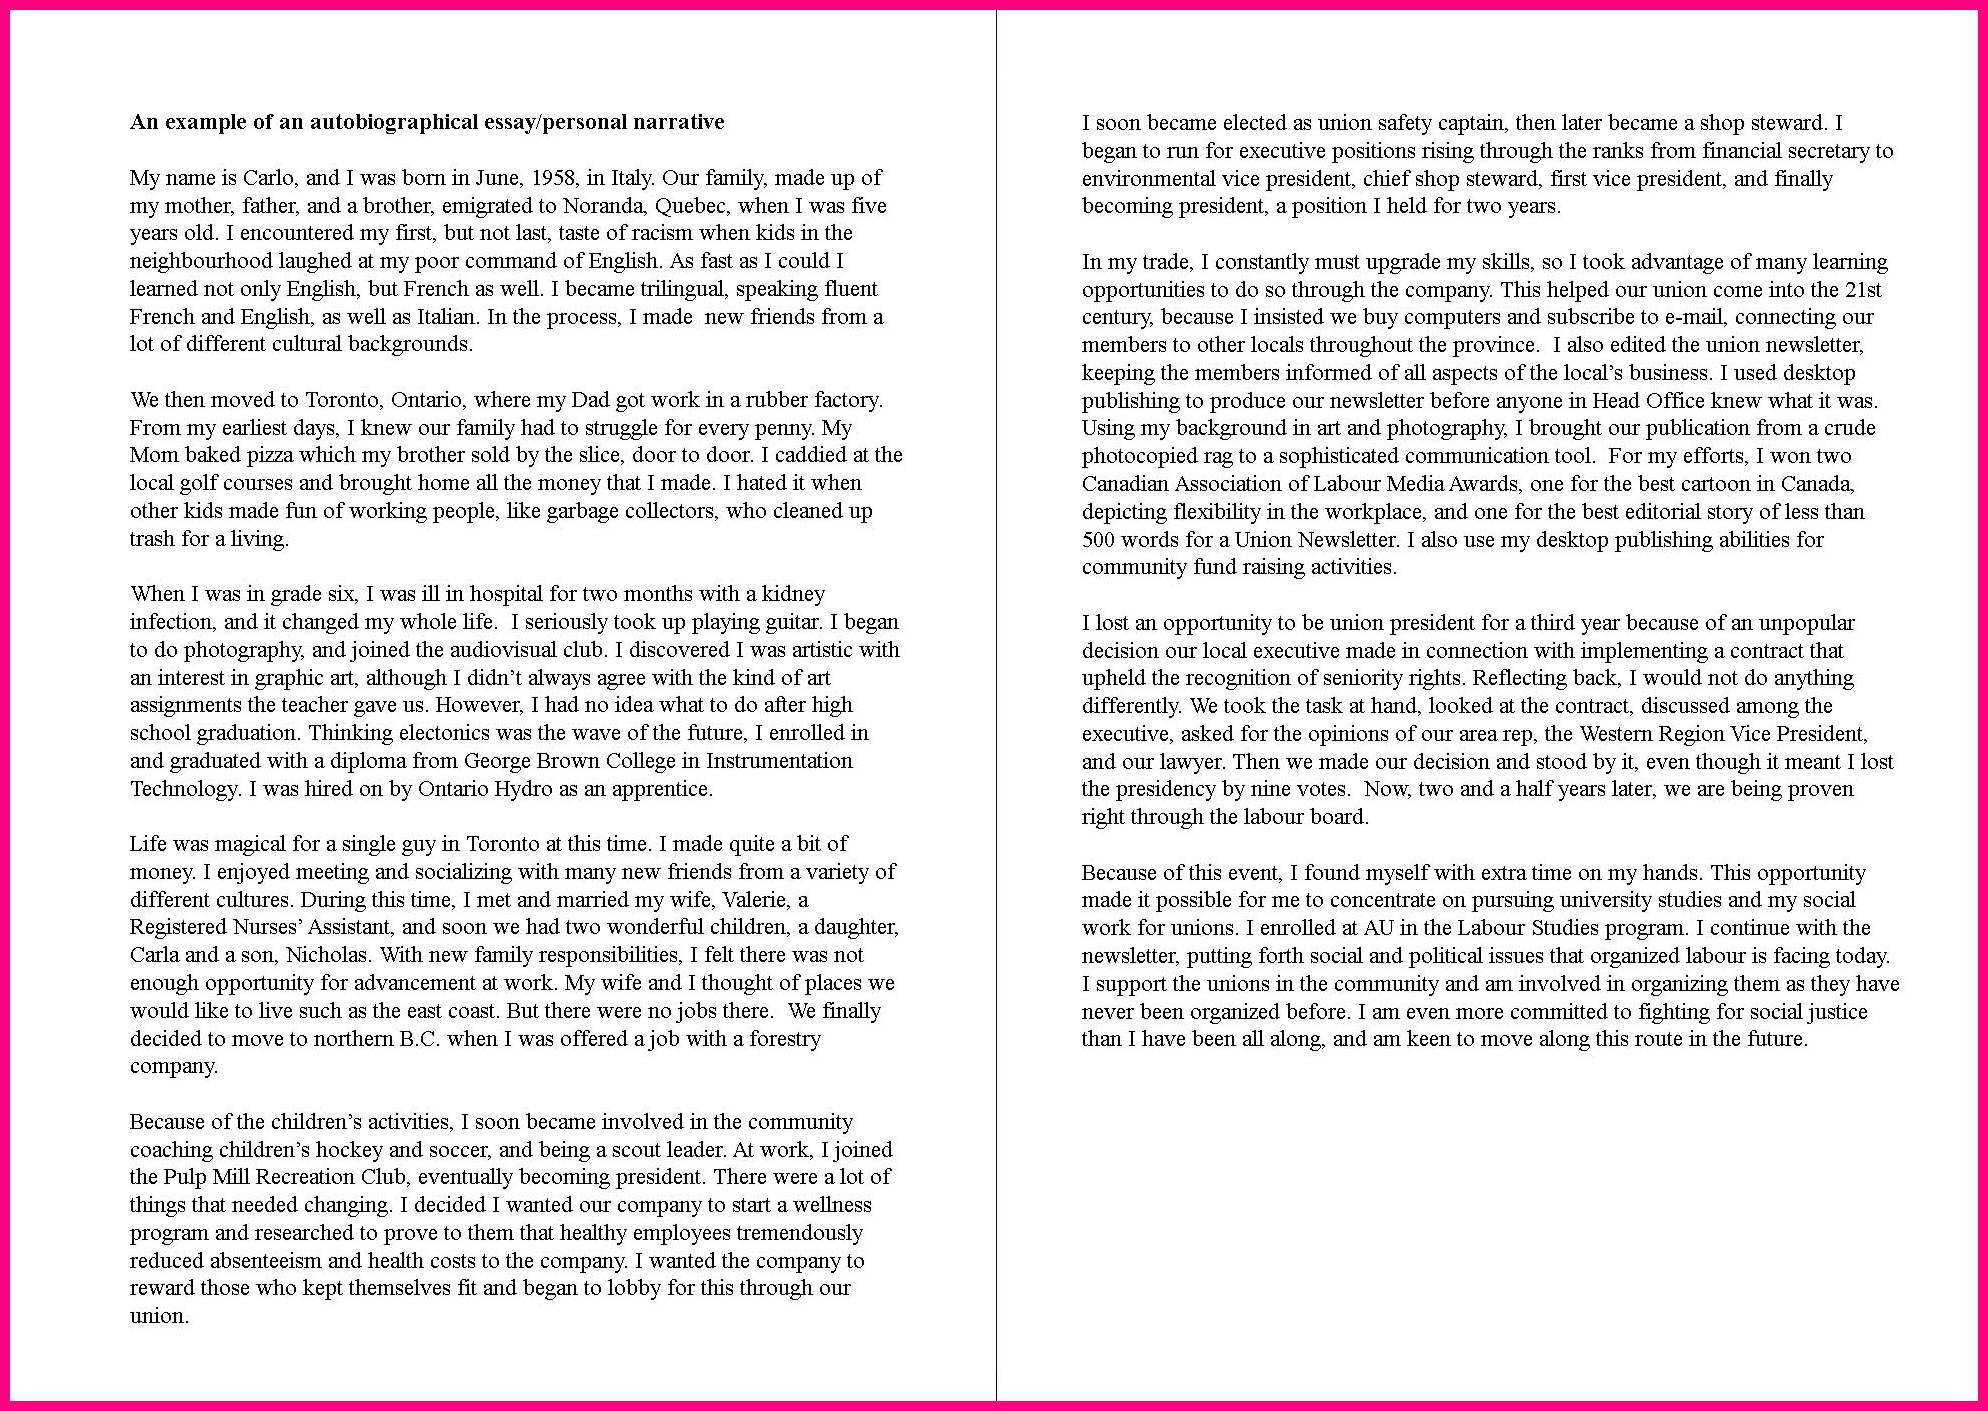 005 Autobiography Essay Example Family Background Sample Autobiographical Unique Of About Yourself Tagalog Bio For Students Full